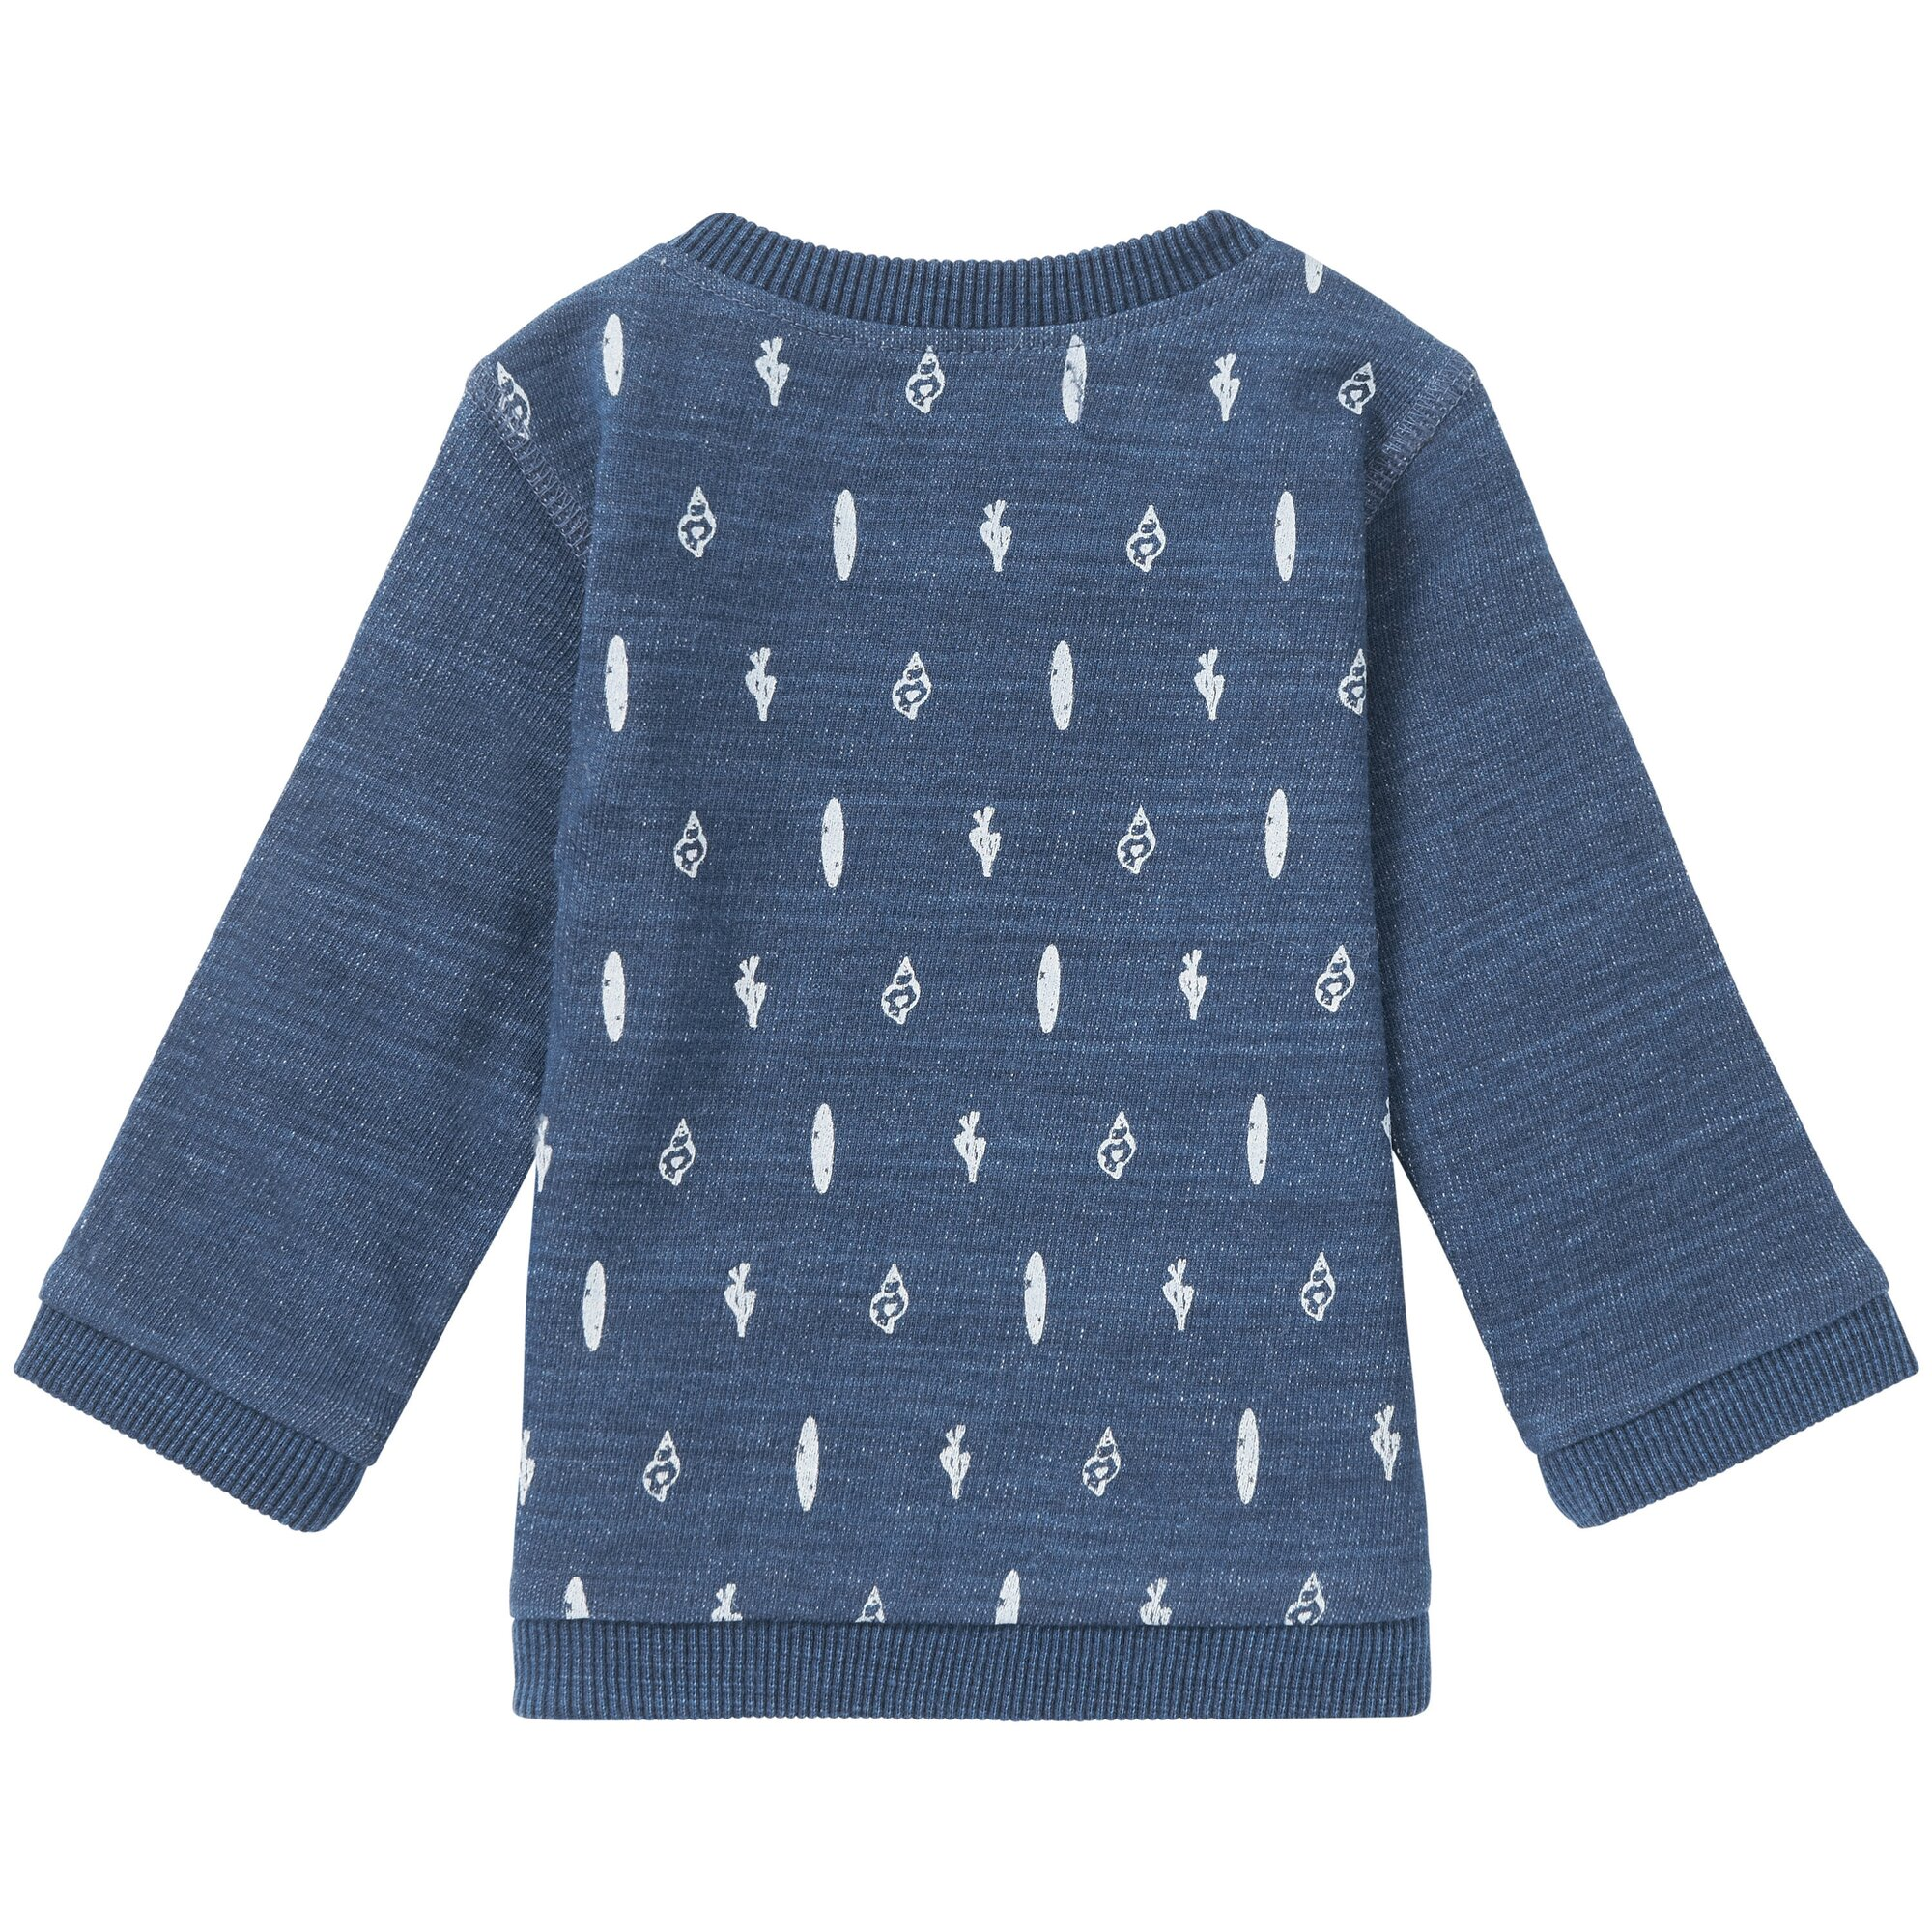 noppies-sweater-eastlake, 24.99 EUR @ babywalz-de